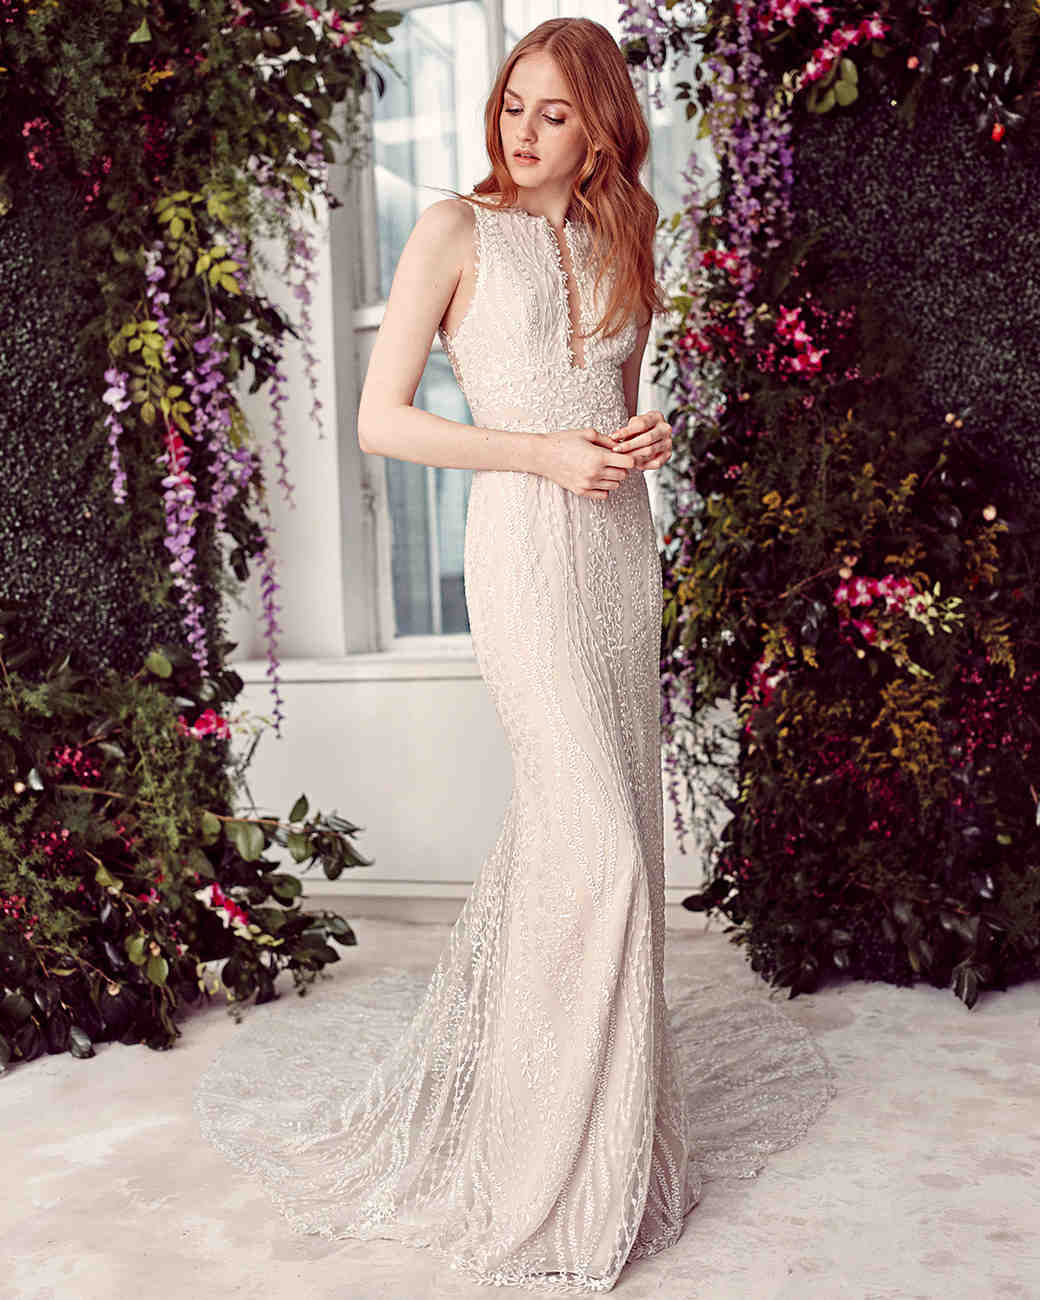 alyne by rita vinieris champagne beaded high-neck wedding dress spring 2020